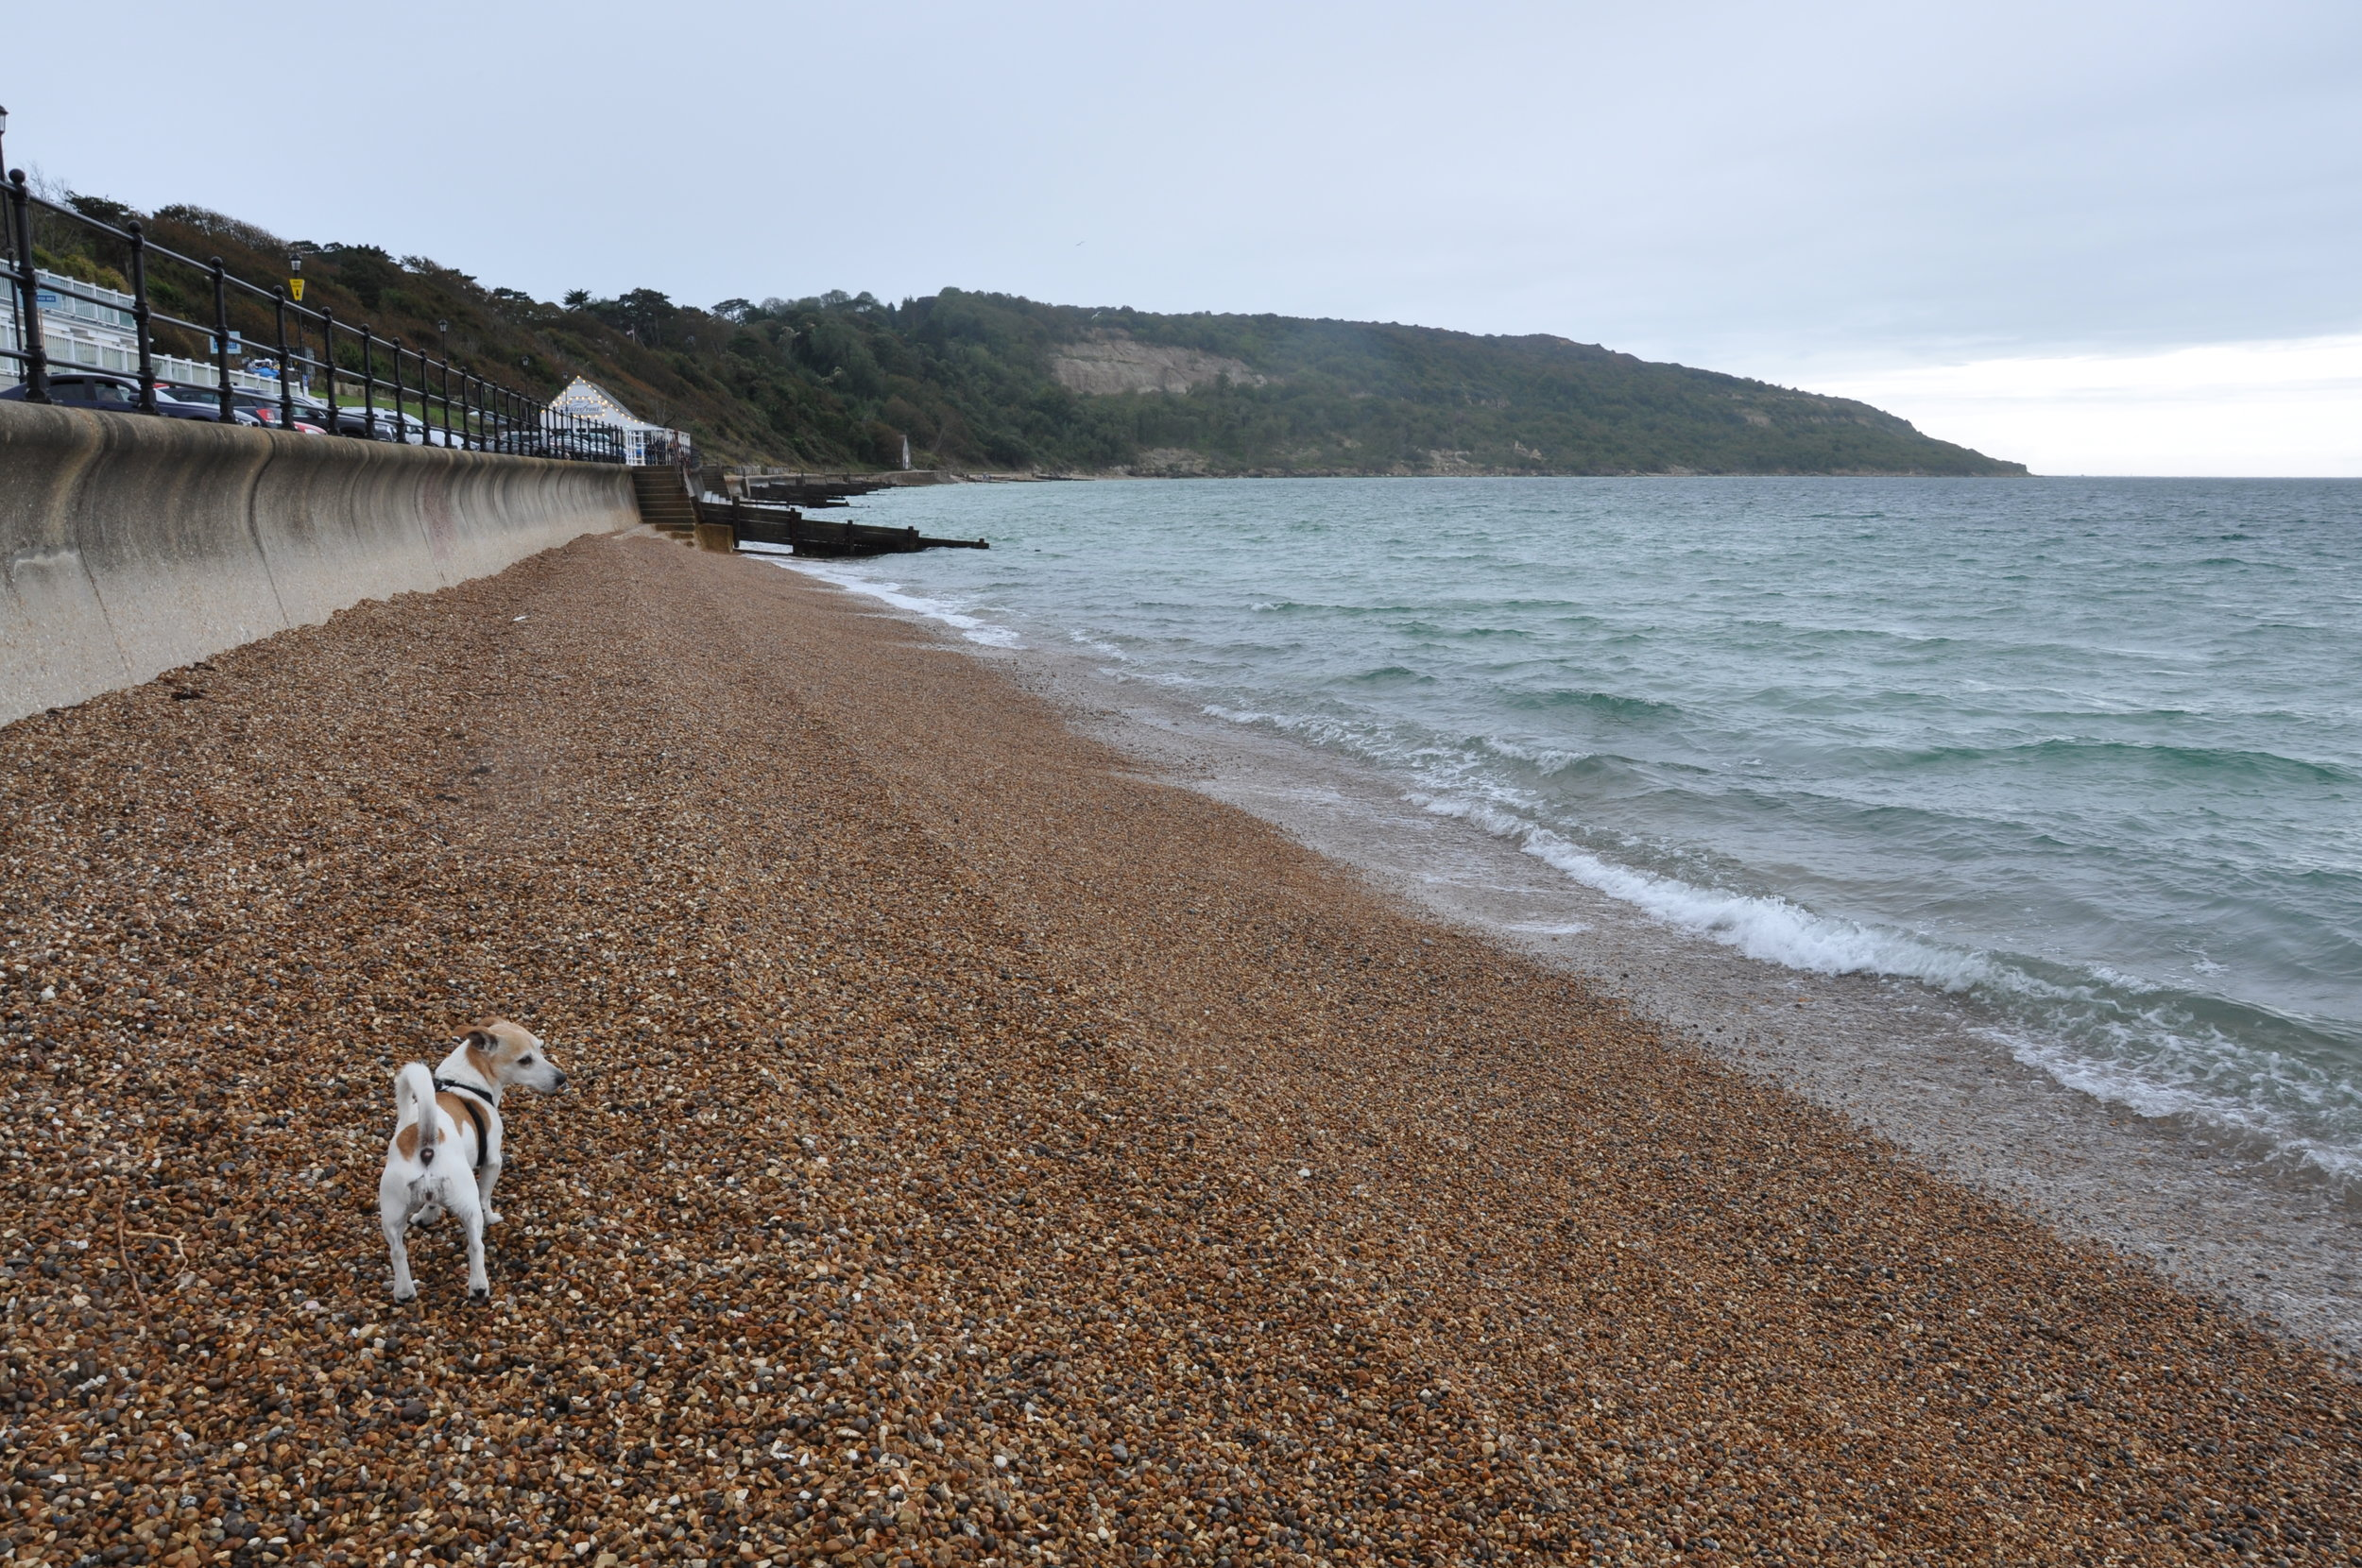 My lovely old lady braving the elements at Totland Bay.